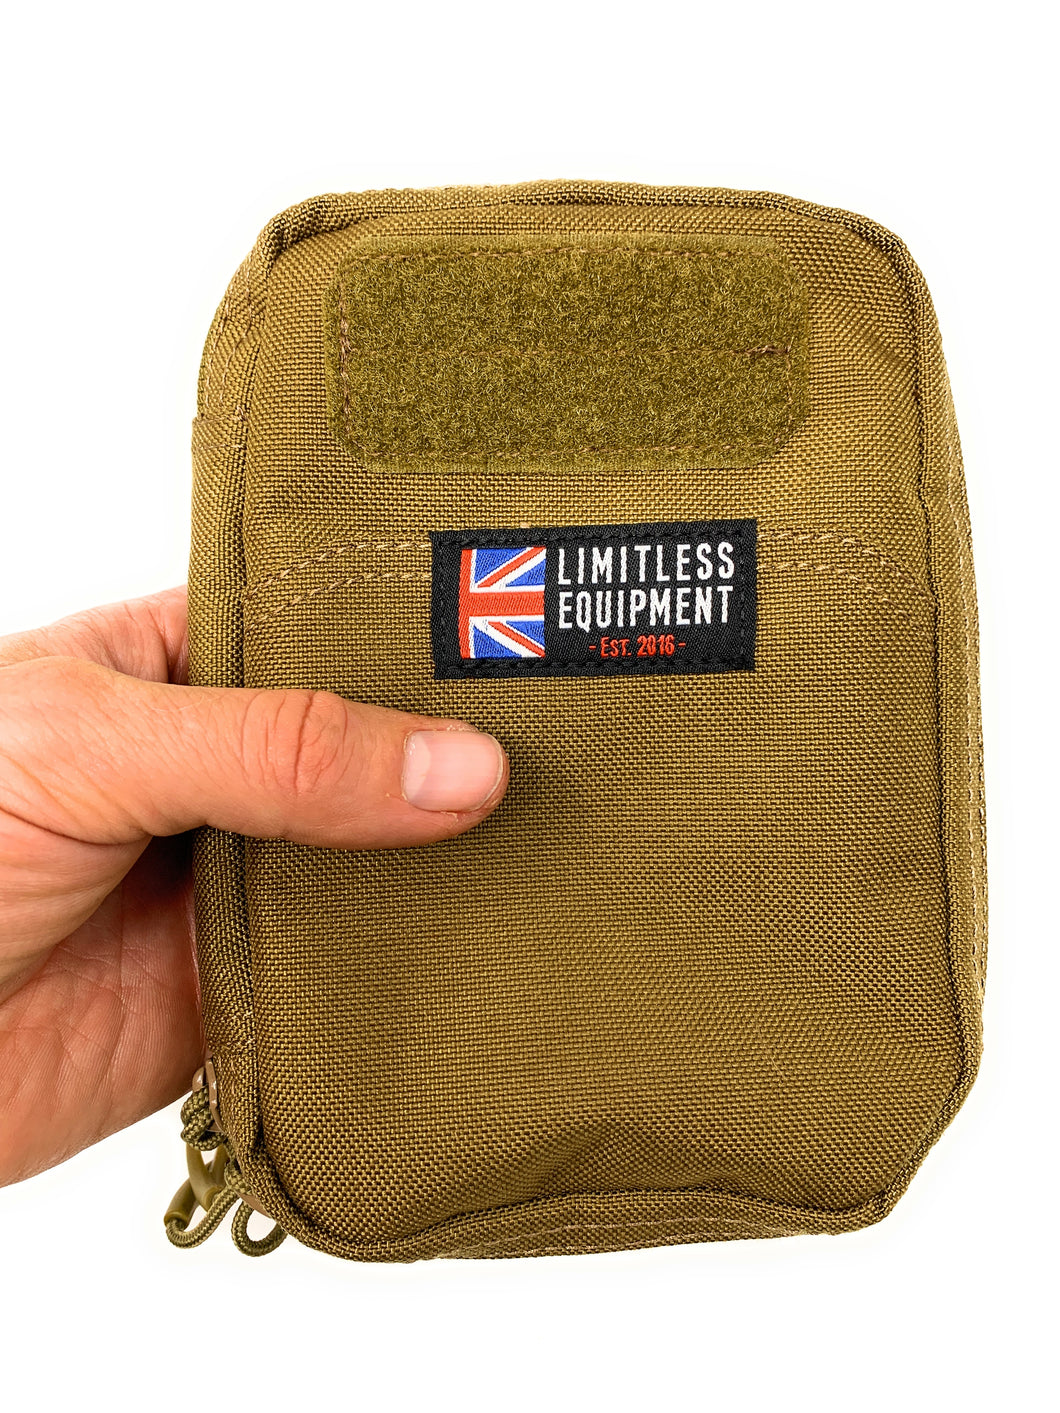 Limitless Equipment EDC-XS Utility Pouch. Bombproof storage for EDC, first aid kits and personal organisation (MOLLE) - Limitless Equipment